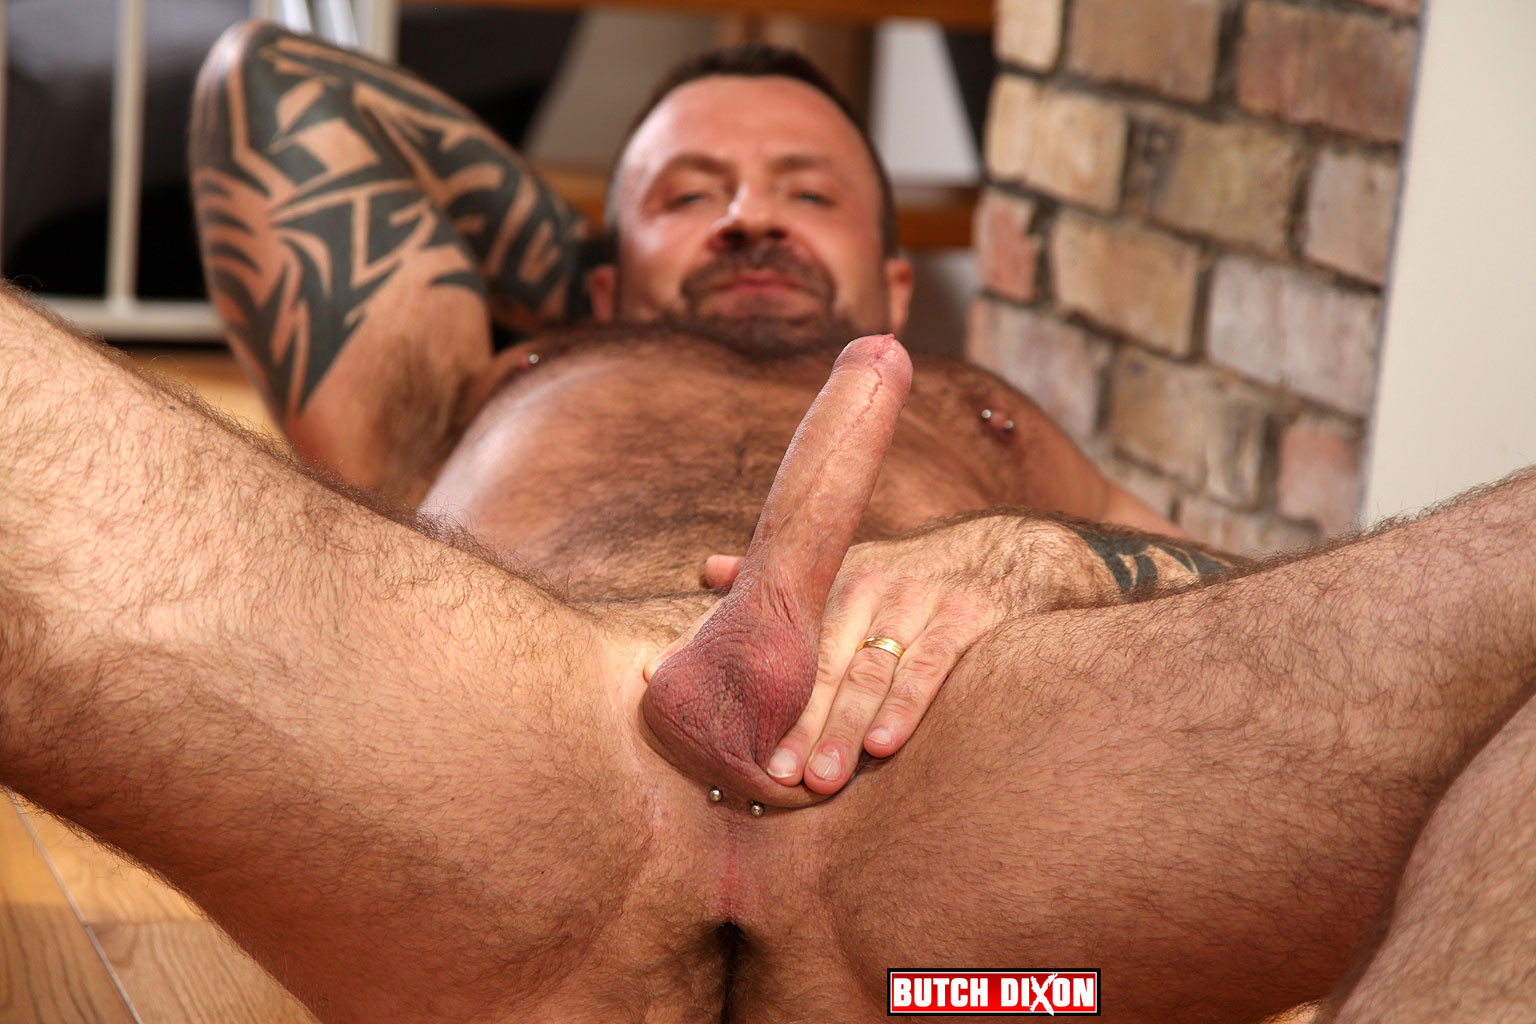 Butch Dixon Marc Angelo Muscle Bear Masturbating Big Uncut Cock Amateur Gay Porn 04 Hairy Canadian Muscle Daddy Bear Strokes His Big Uncut Cock